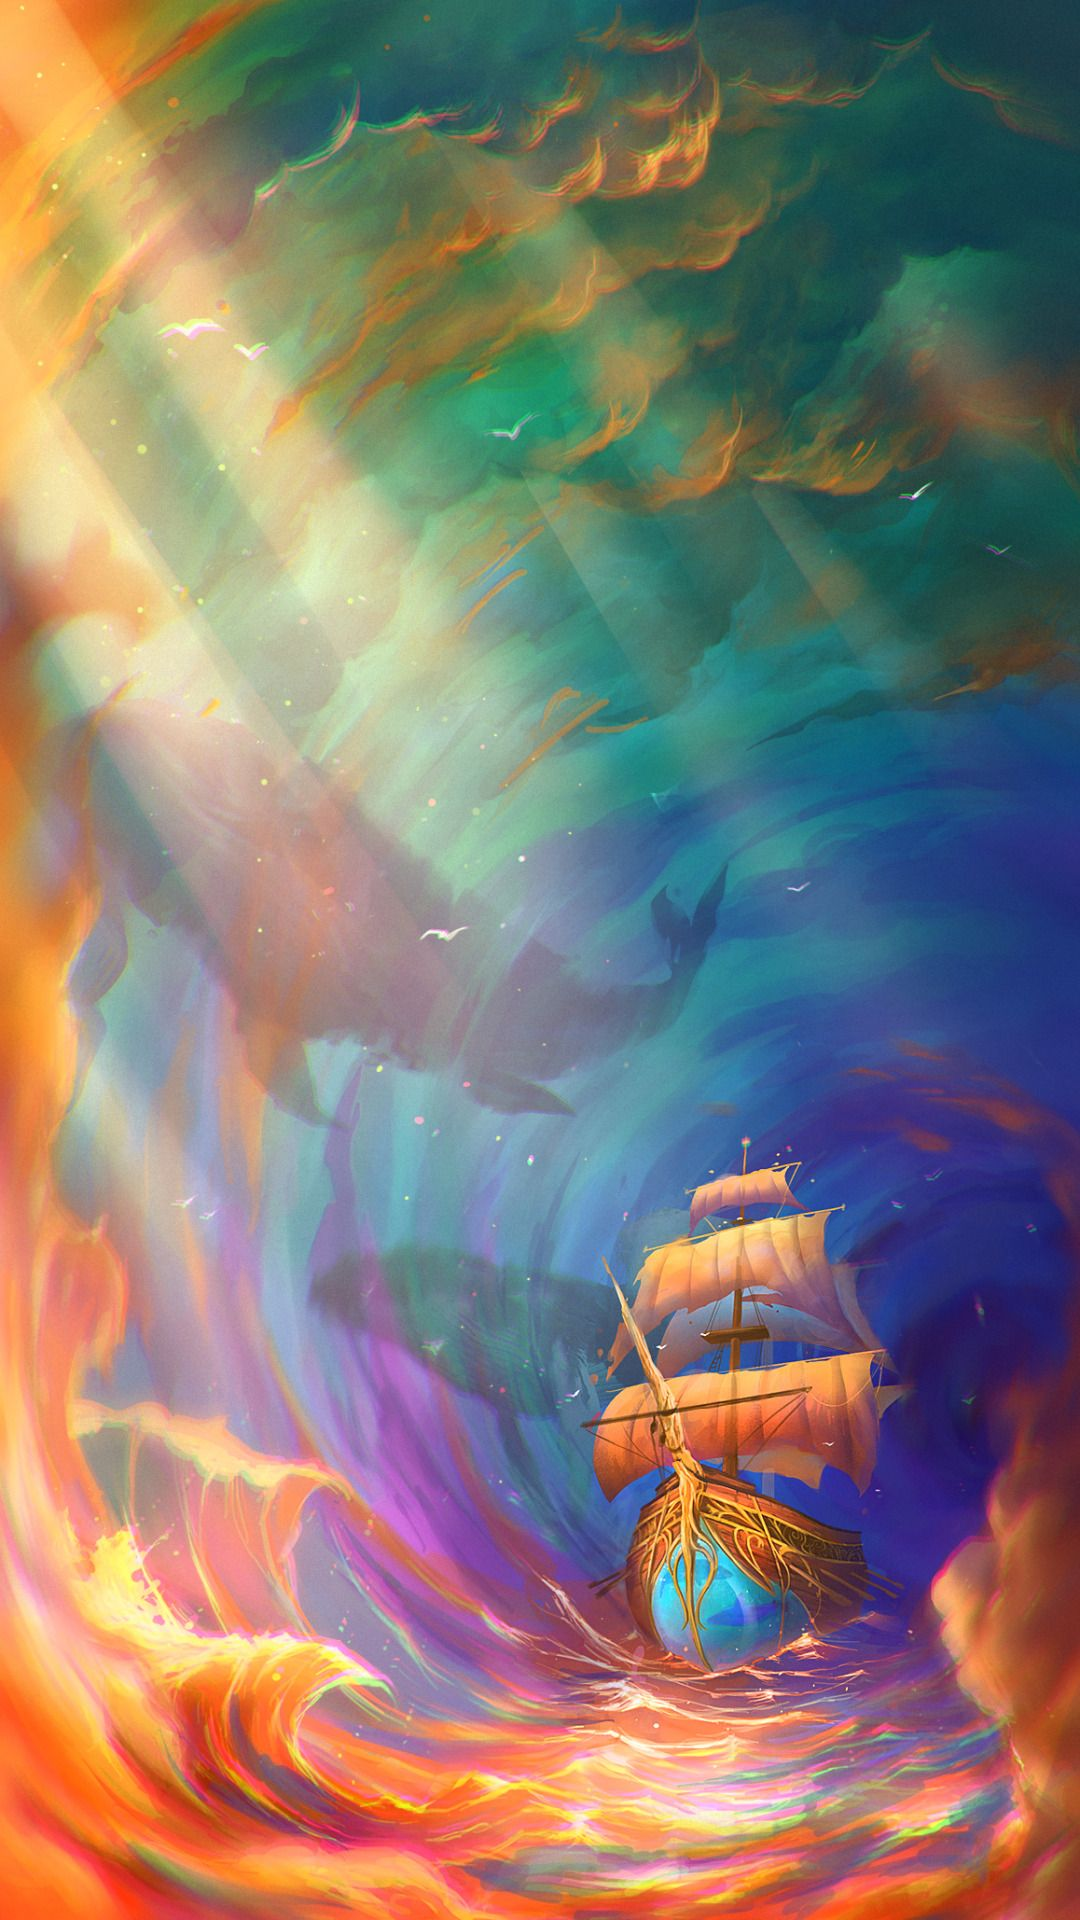 Boat in the deep sea wallpaper Art, Painting, Fantasy